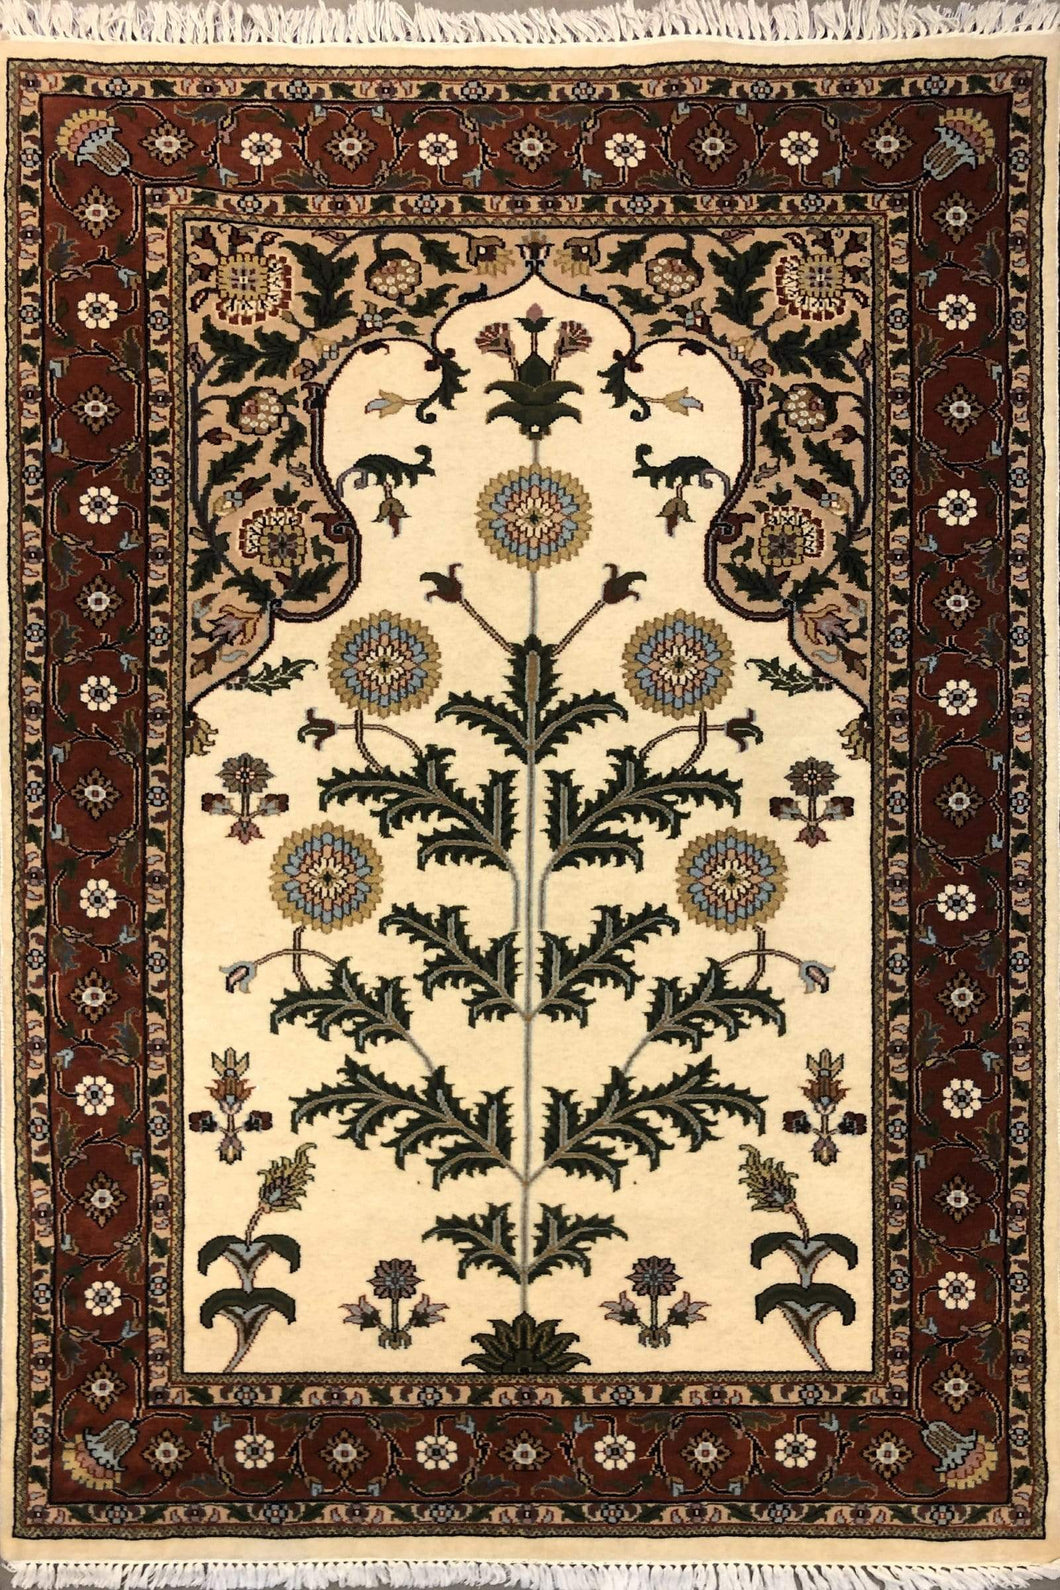 The Rugs Cafe Carpets Cream / 4x6 Tree of Life Hand Knotted Rug Cream  4 x 6